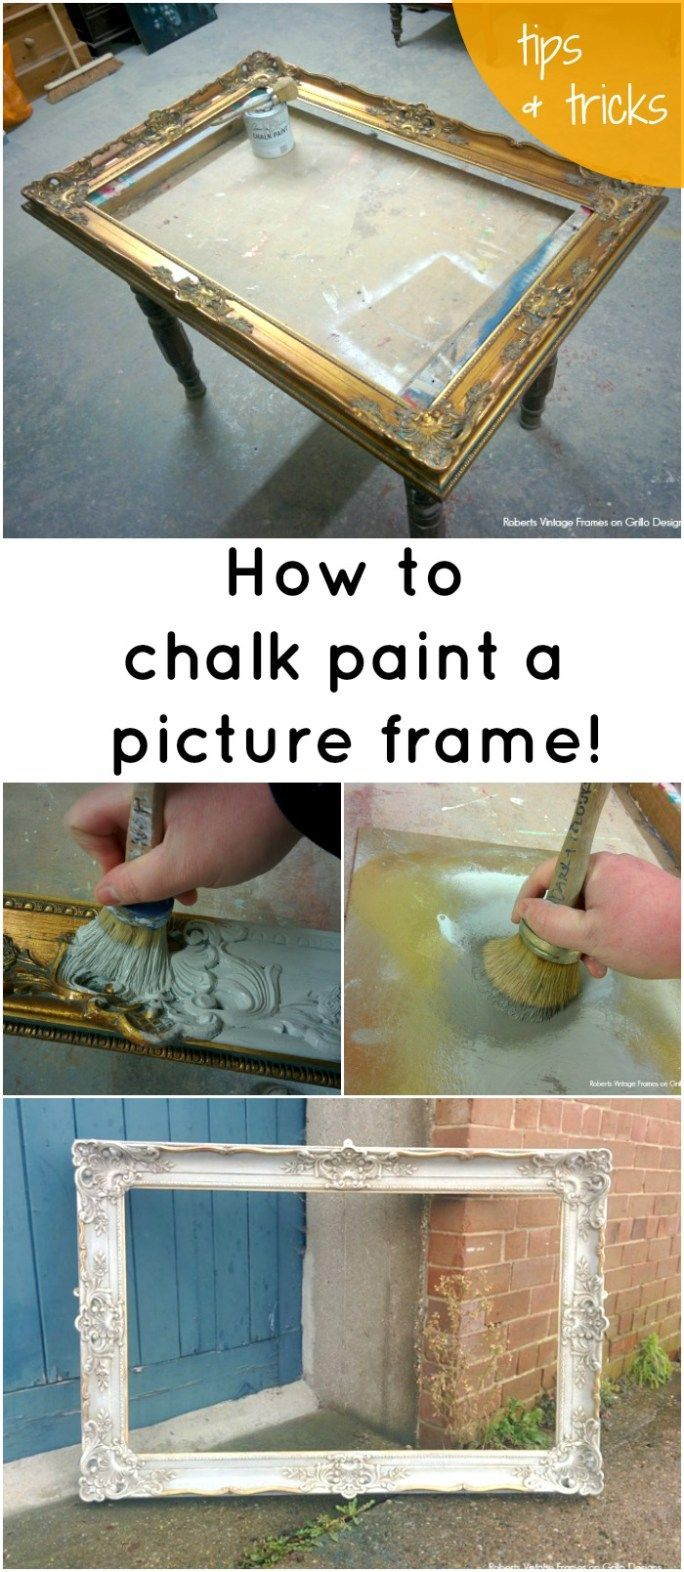 17 best ideas about chalk paint mirror on pinterest painted frames chalk paint wax and. Black Bedroom Furniture Sets. Home Design Ideas